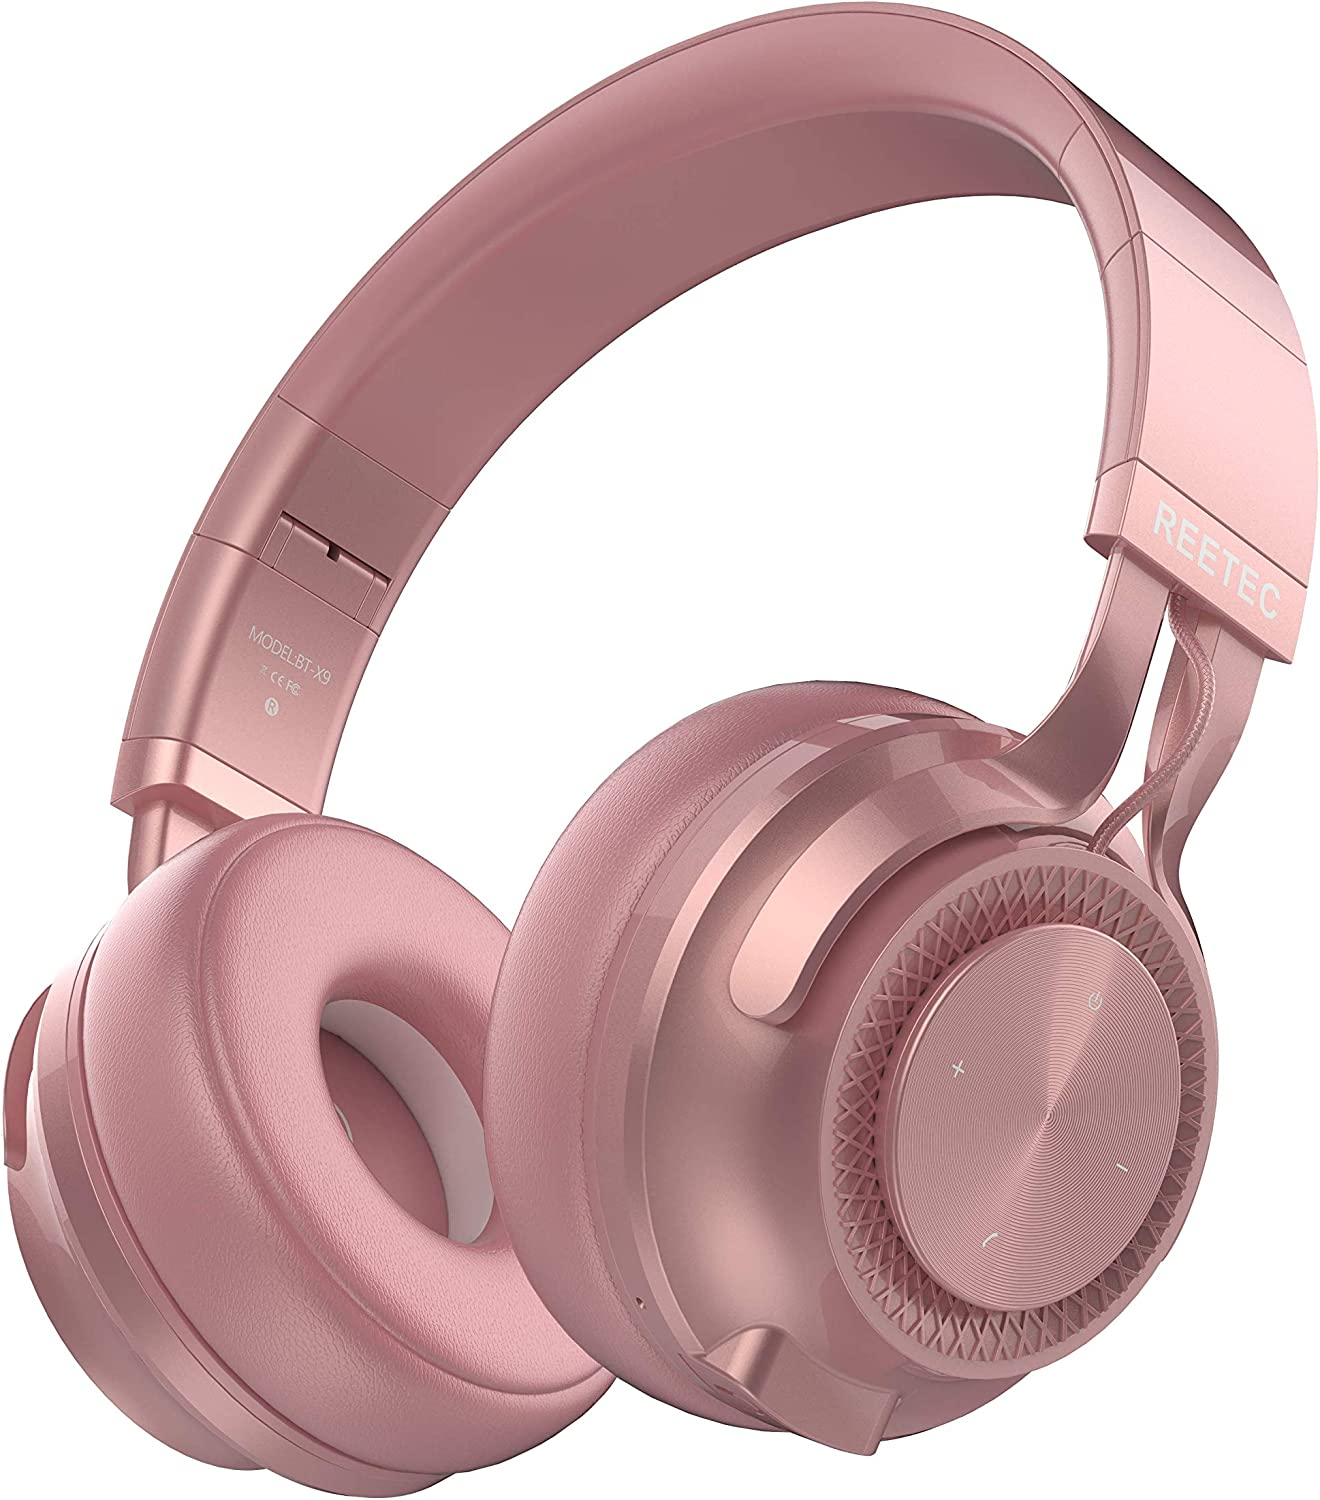 Amazon Com Reetec Wireless Bluetooth Headphones V5 0 With Mic 20 Hrs Playing Time Over Ear Hifi Stereo Wireless Headphones Deep Bass Foldable Headset For Phone Tv Pc Ipad Rose Gold Home Audio